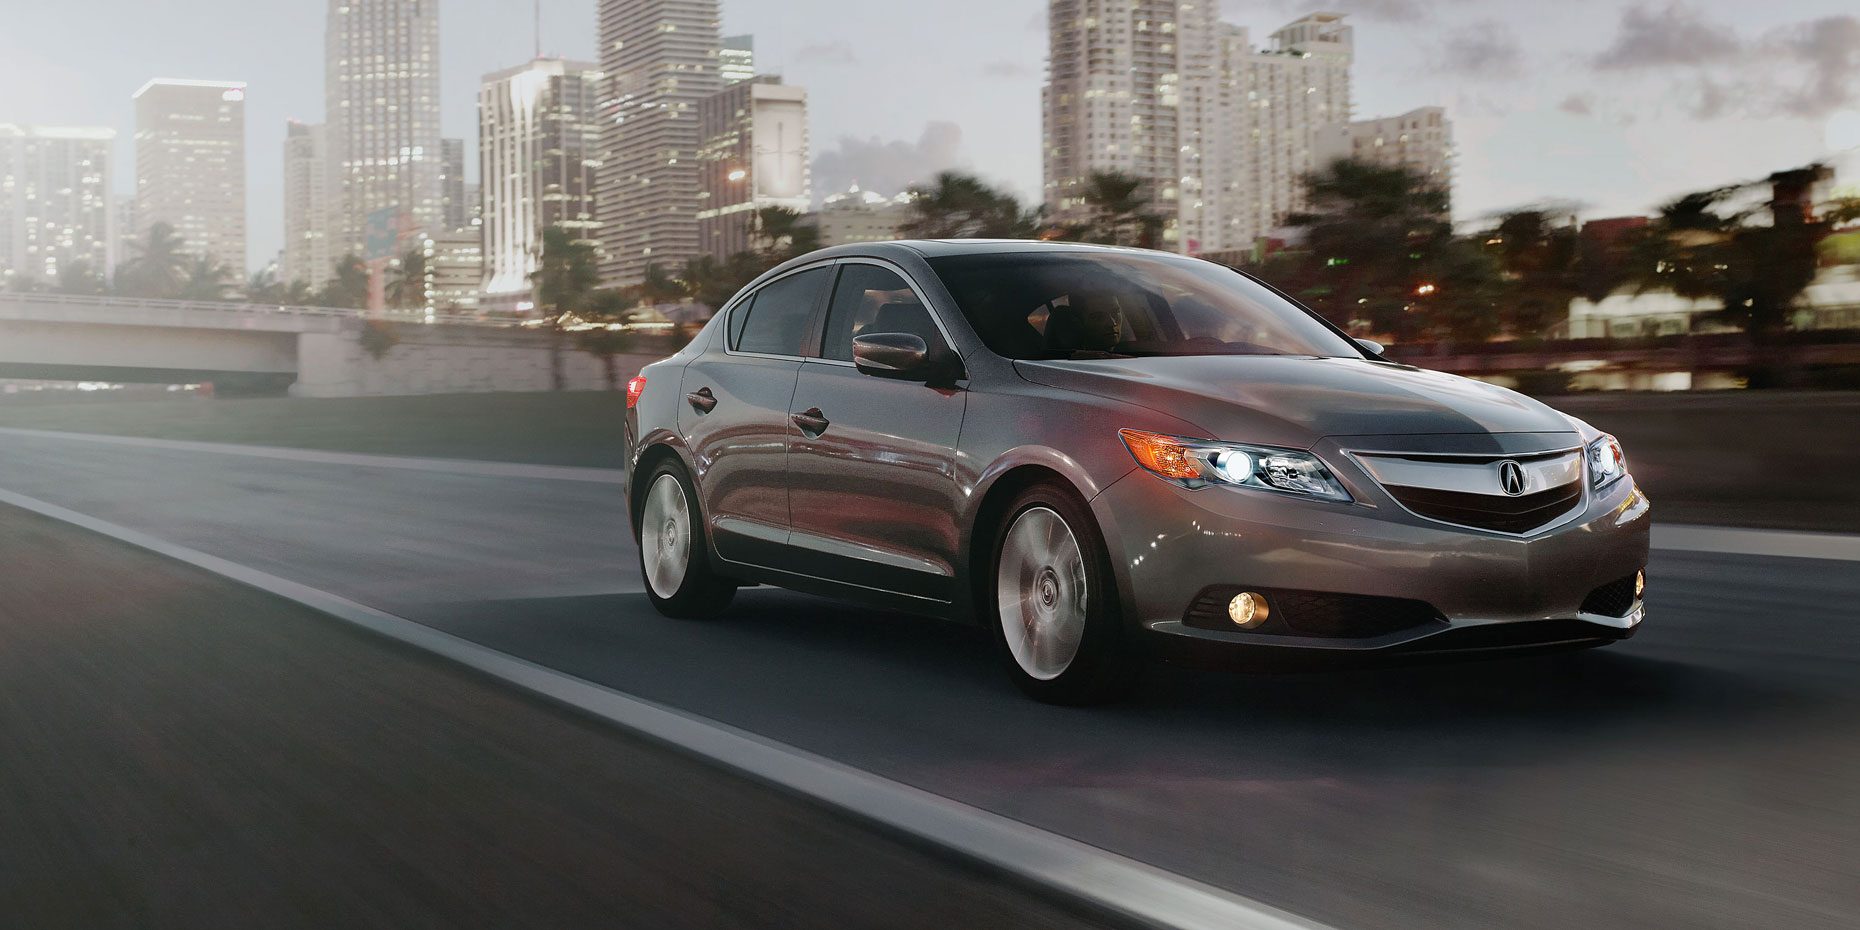 2013-ilx-exterior-5-speed-automatic-with-premium-package-in-polished-metal-metallic-skyline-1_hires.jpg